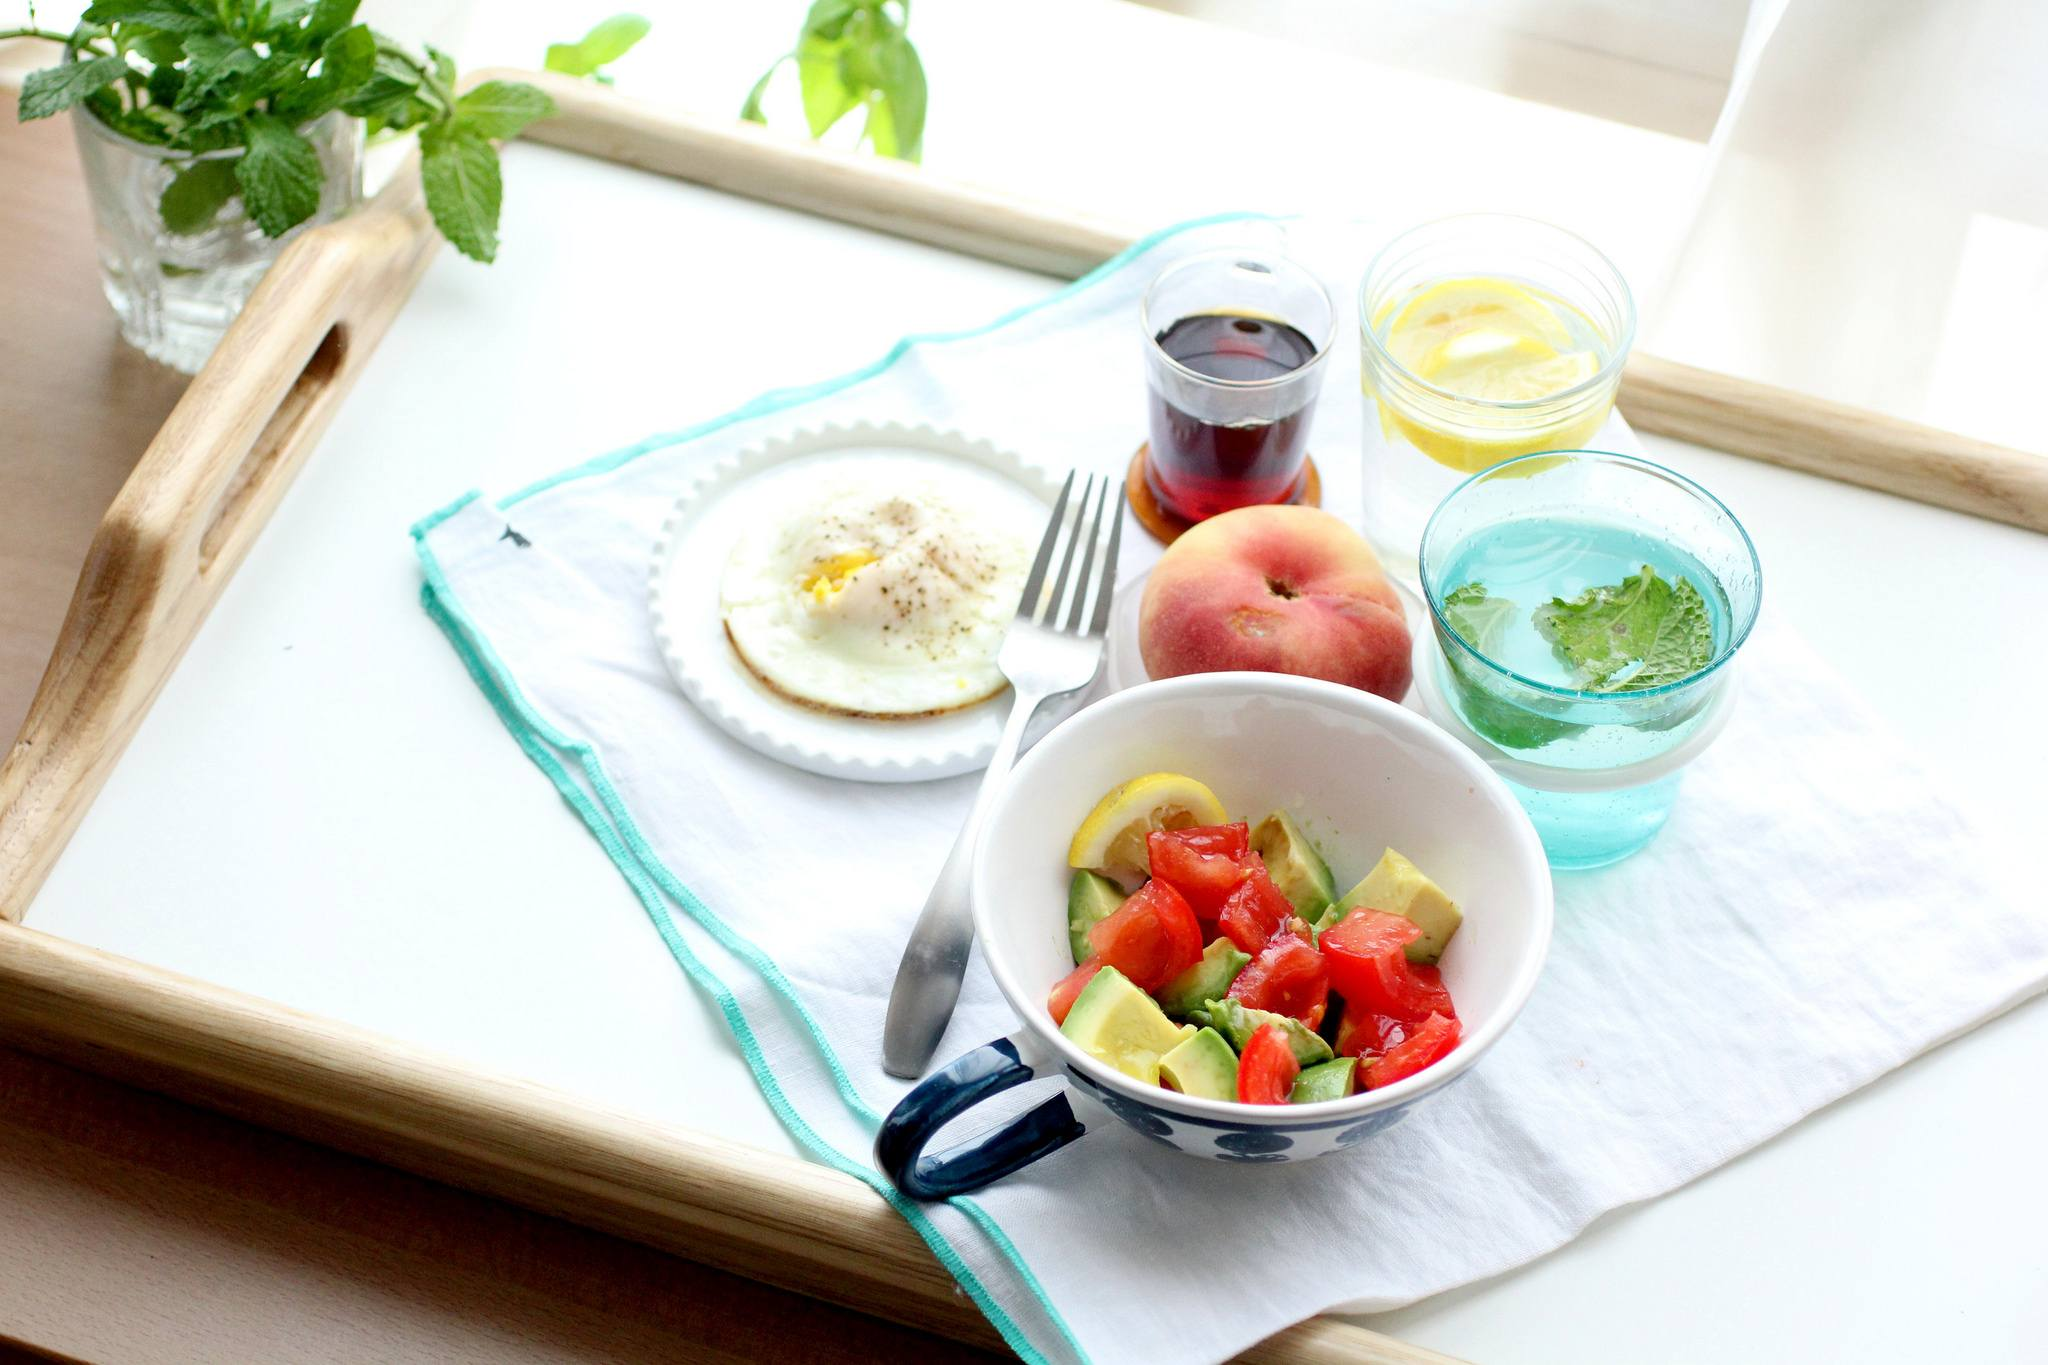 13 Healthy Eating Tips for a Busy Lifestyle